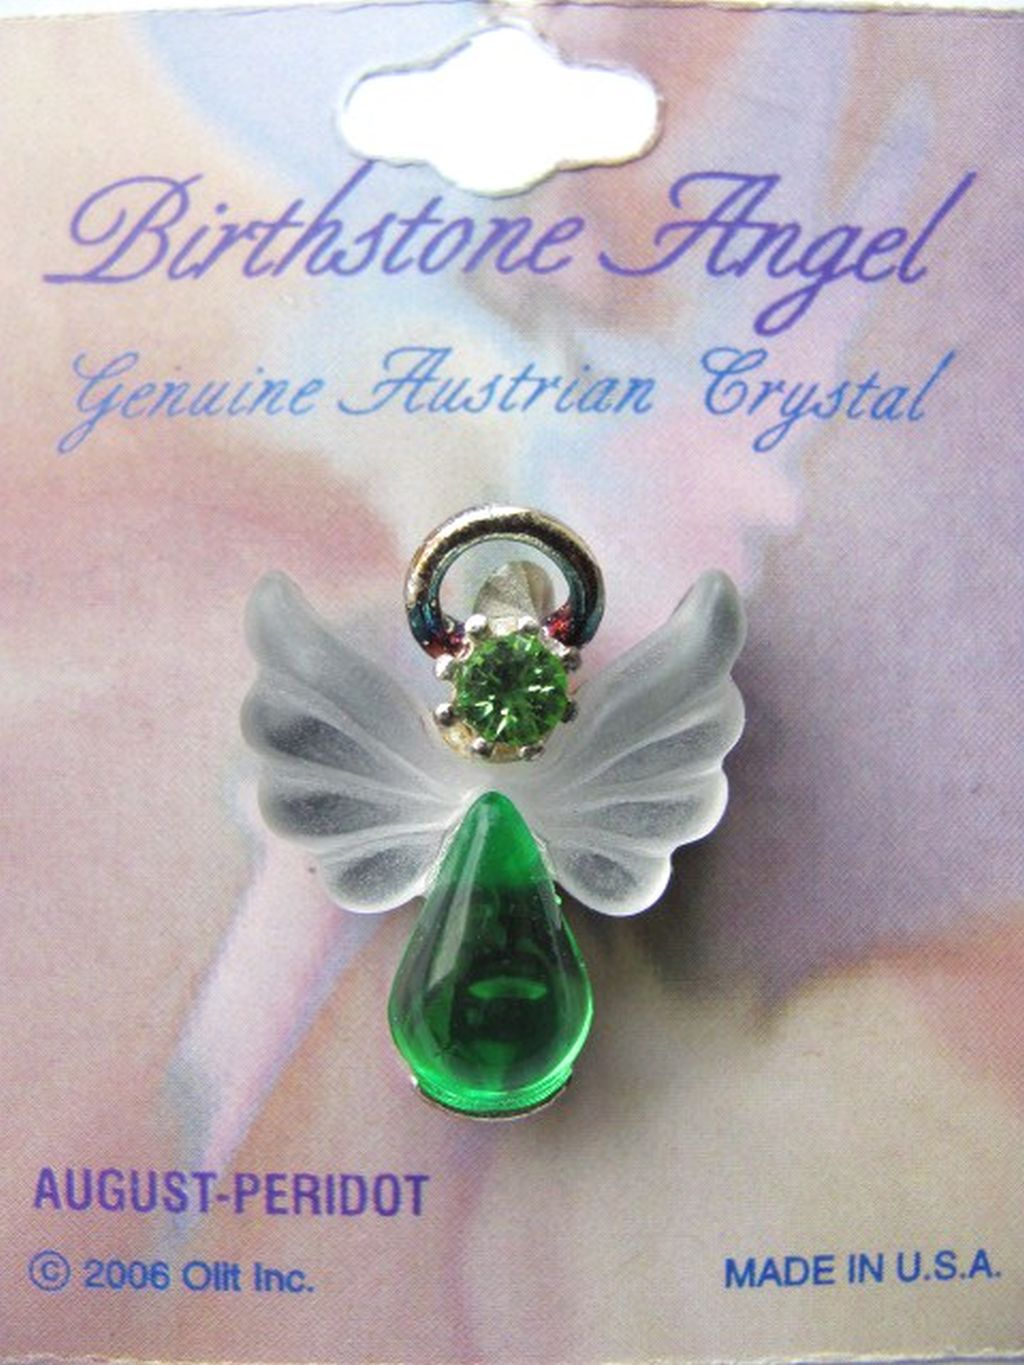 Peridot August Birthstone Angel Pin, Genuine Austrian Crystals